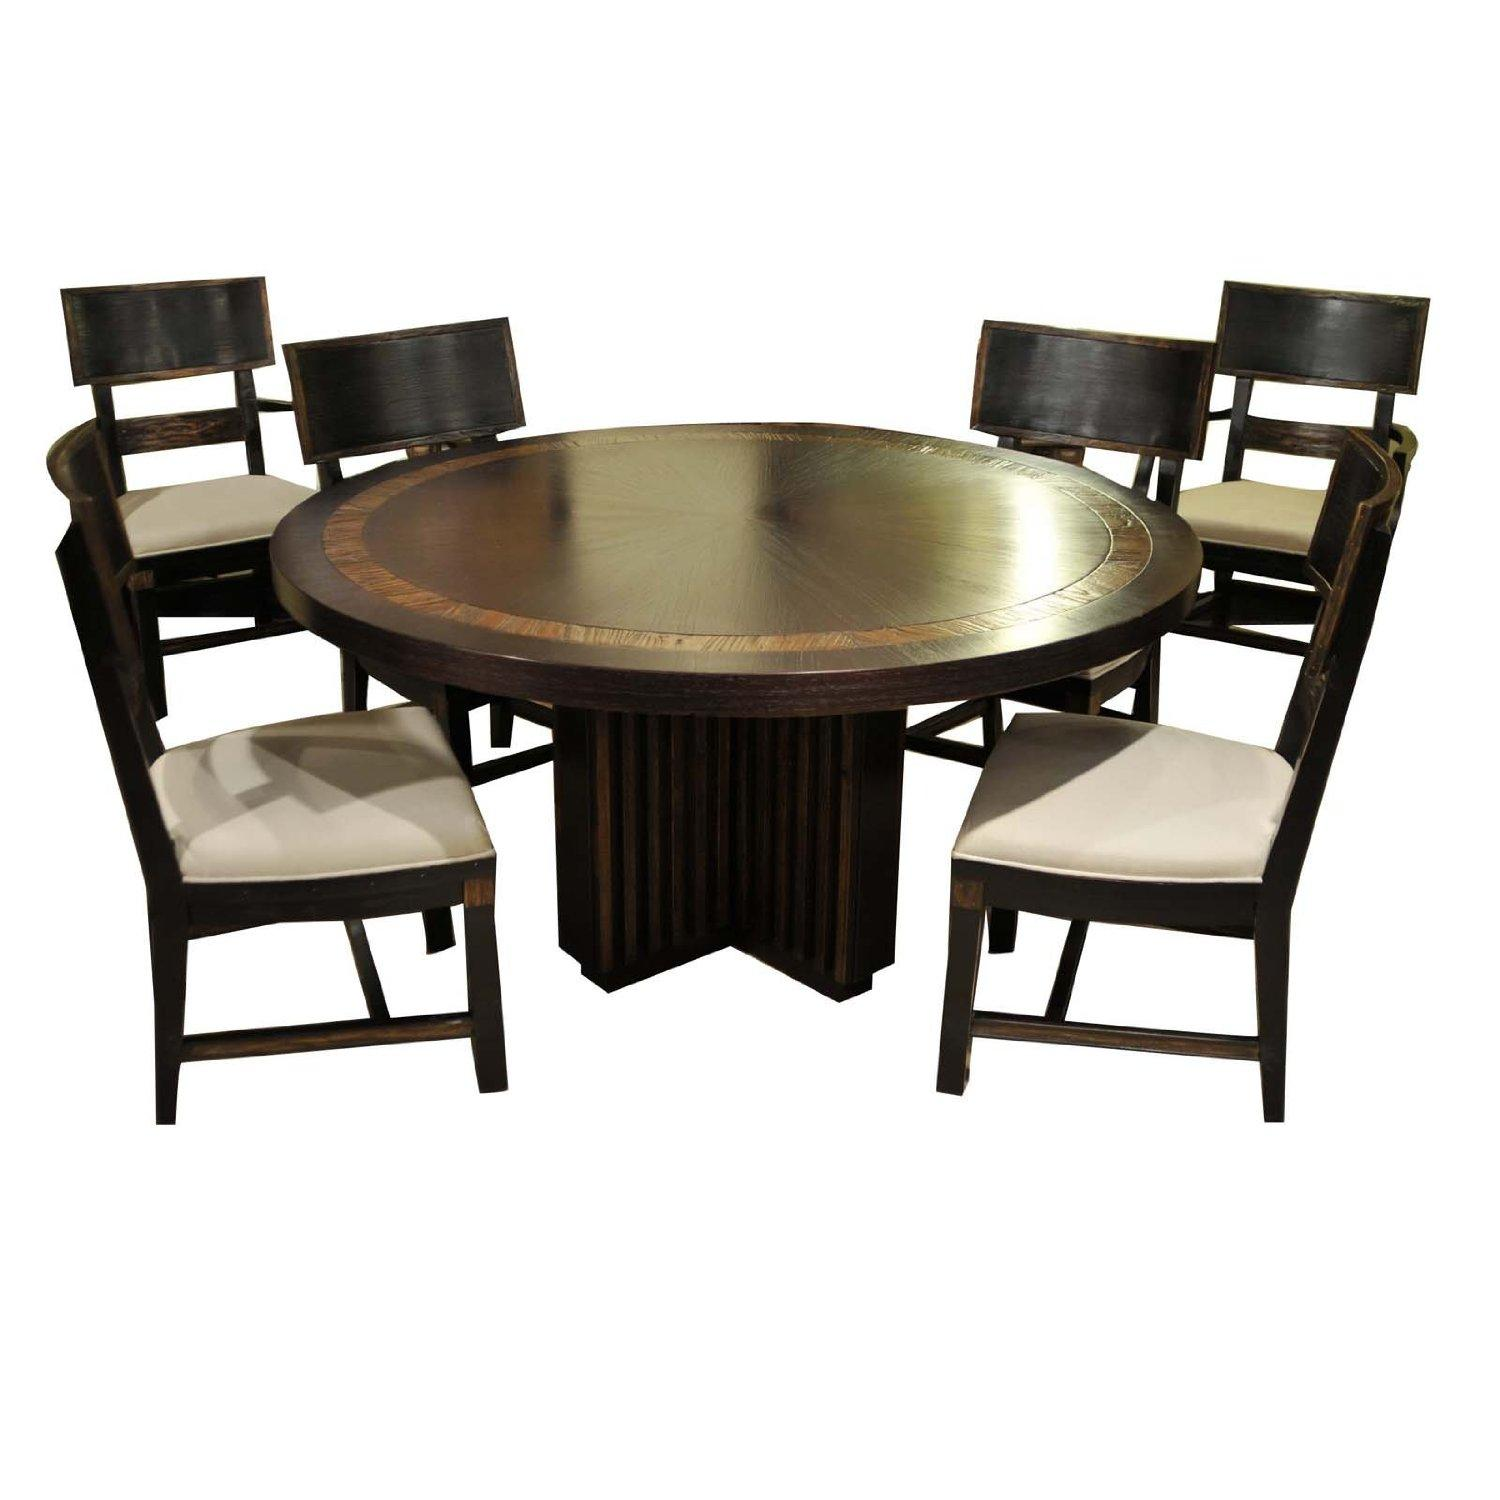 Transitional round dining table 6 chairs chairish for 6 chair round dining table set